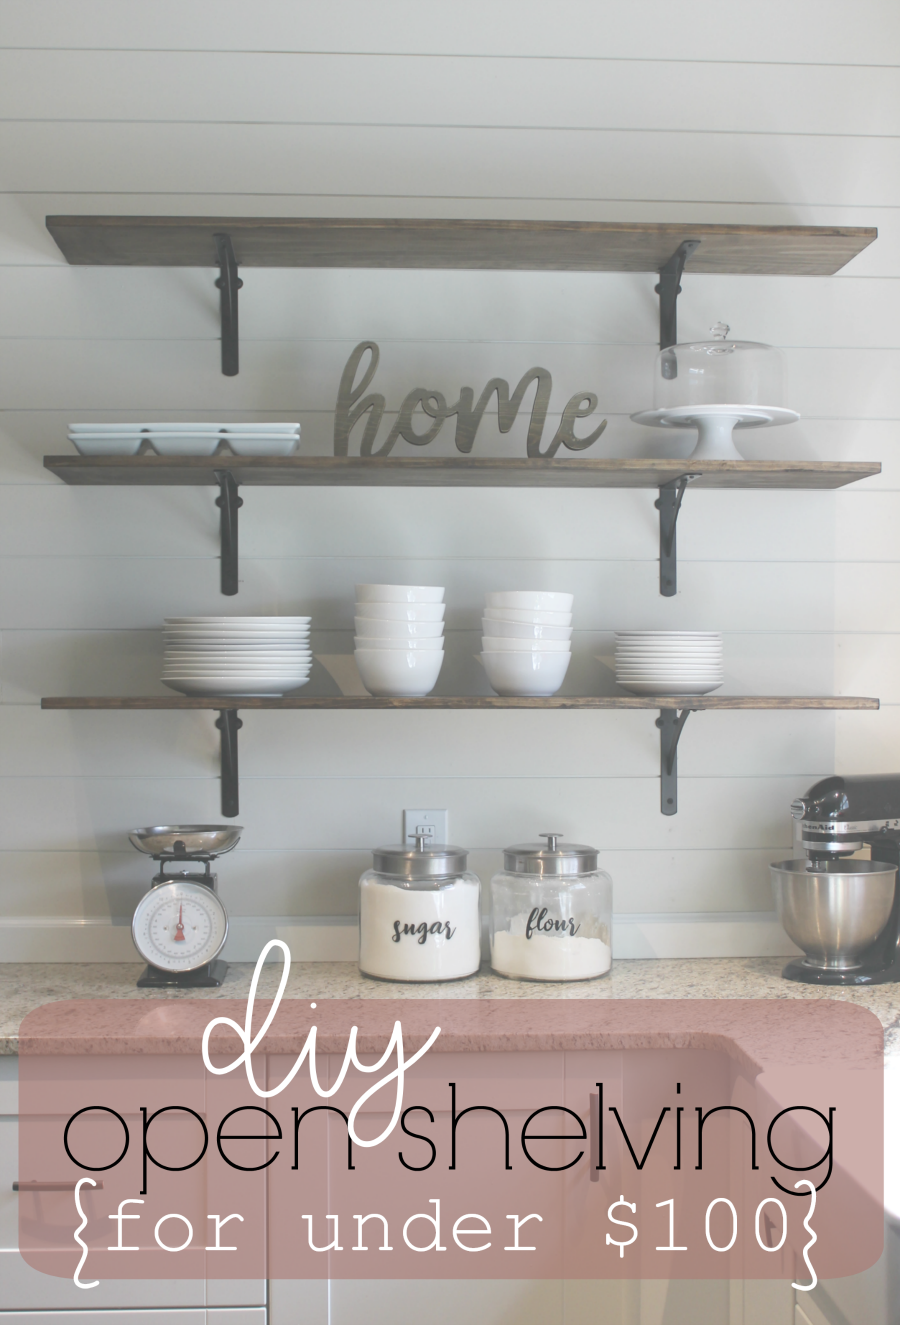 How To Build Diy Kitchen Shelves Pinterest Image